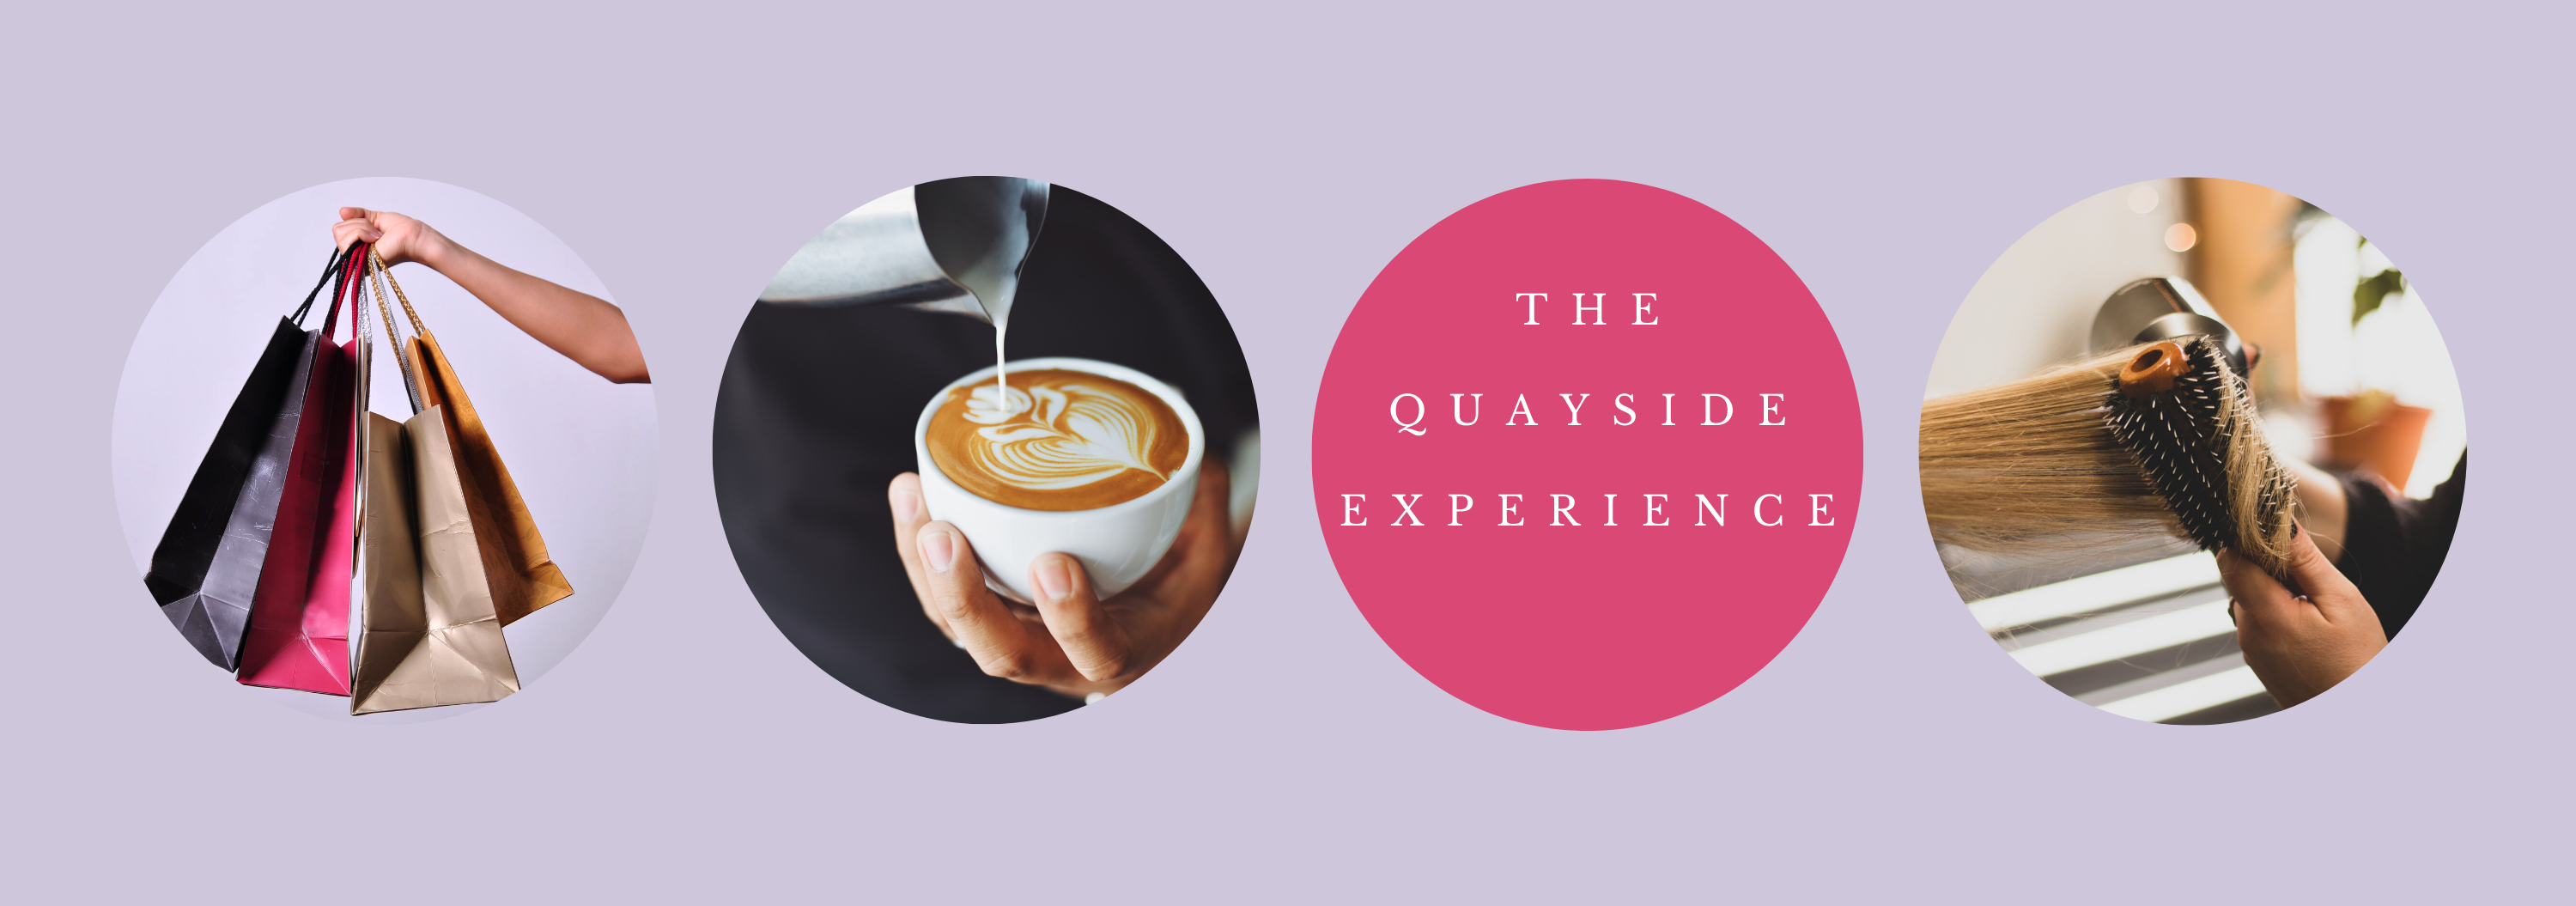 Quayside Experience